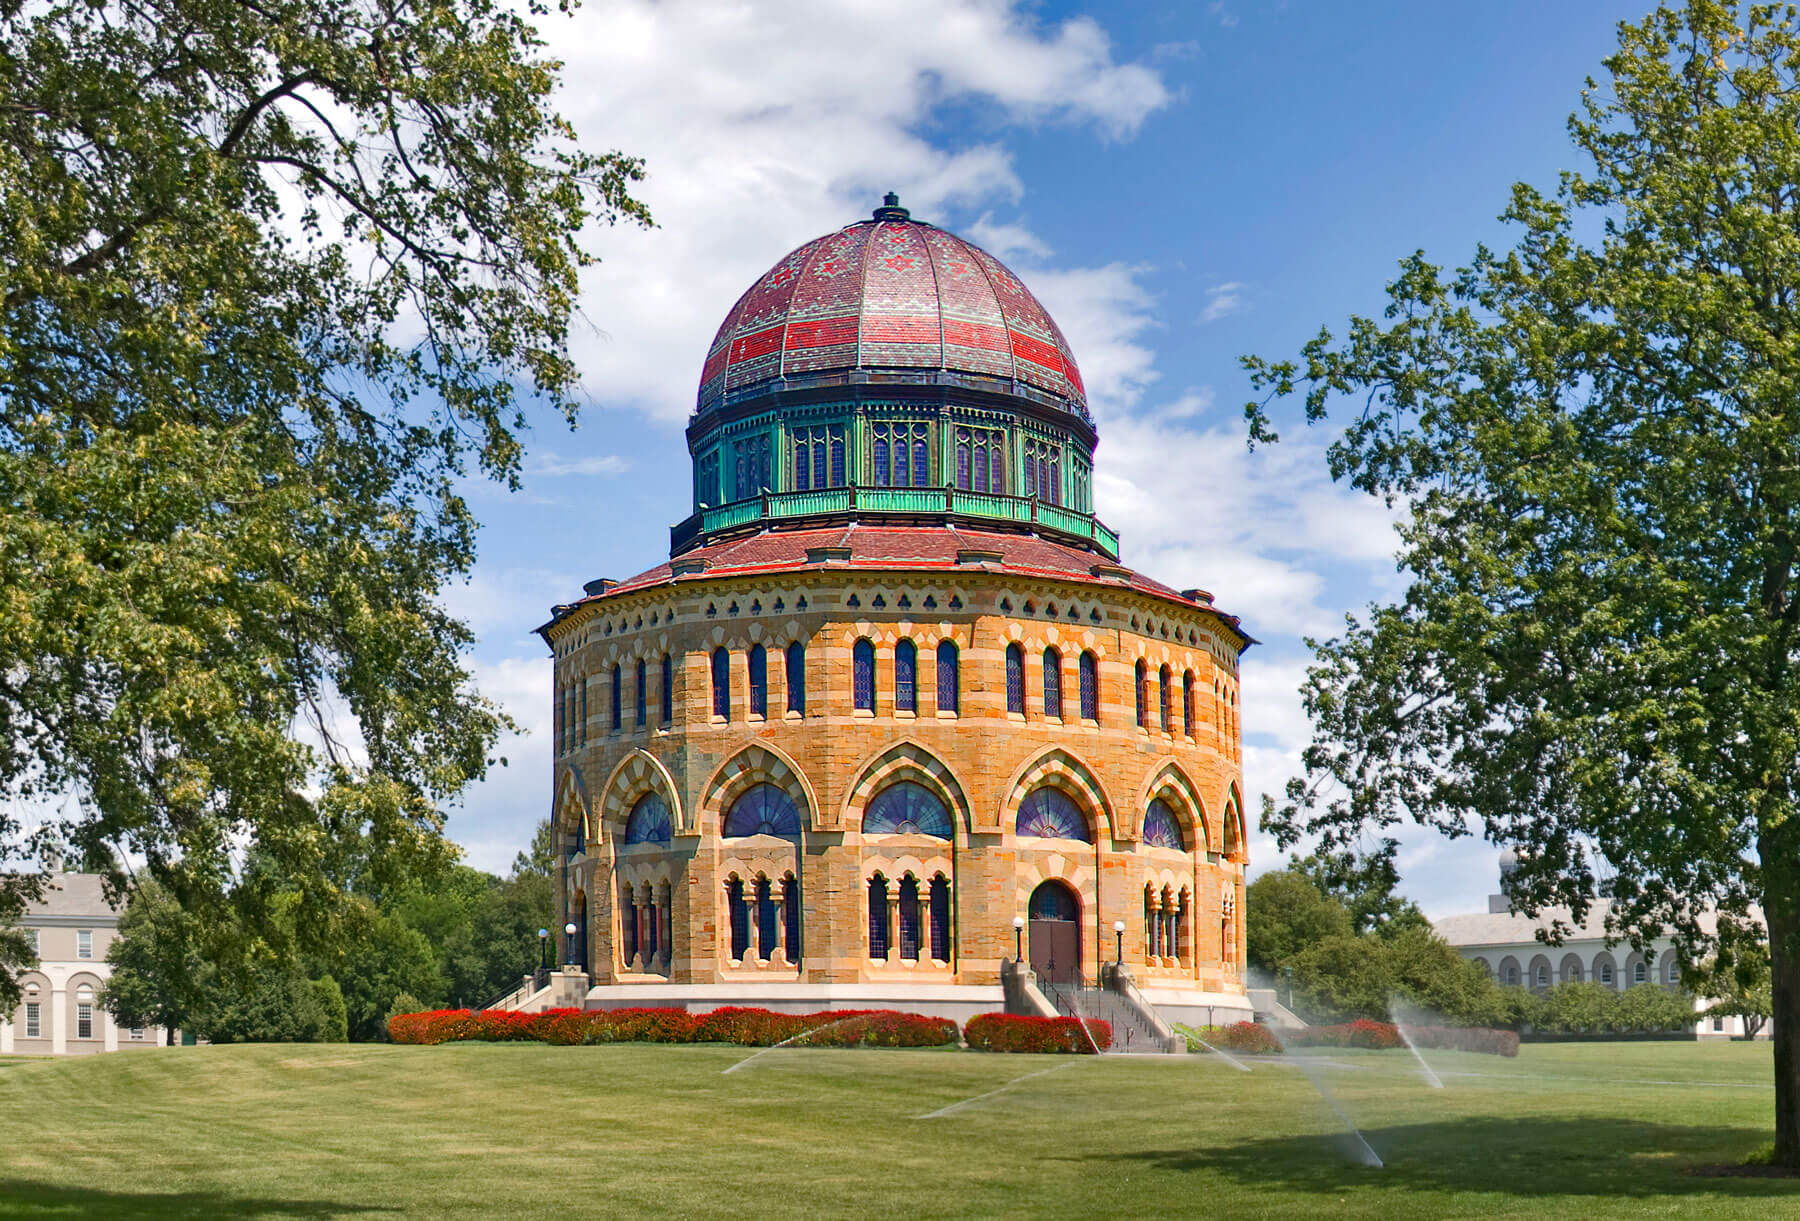 Union College Nott Memorial